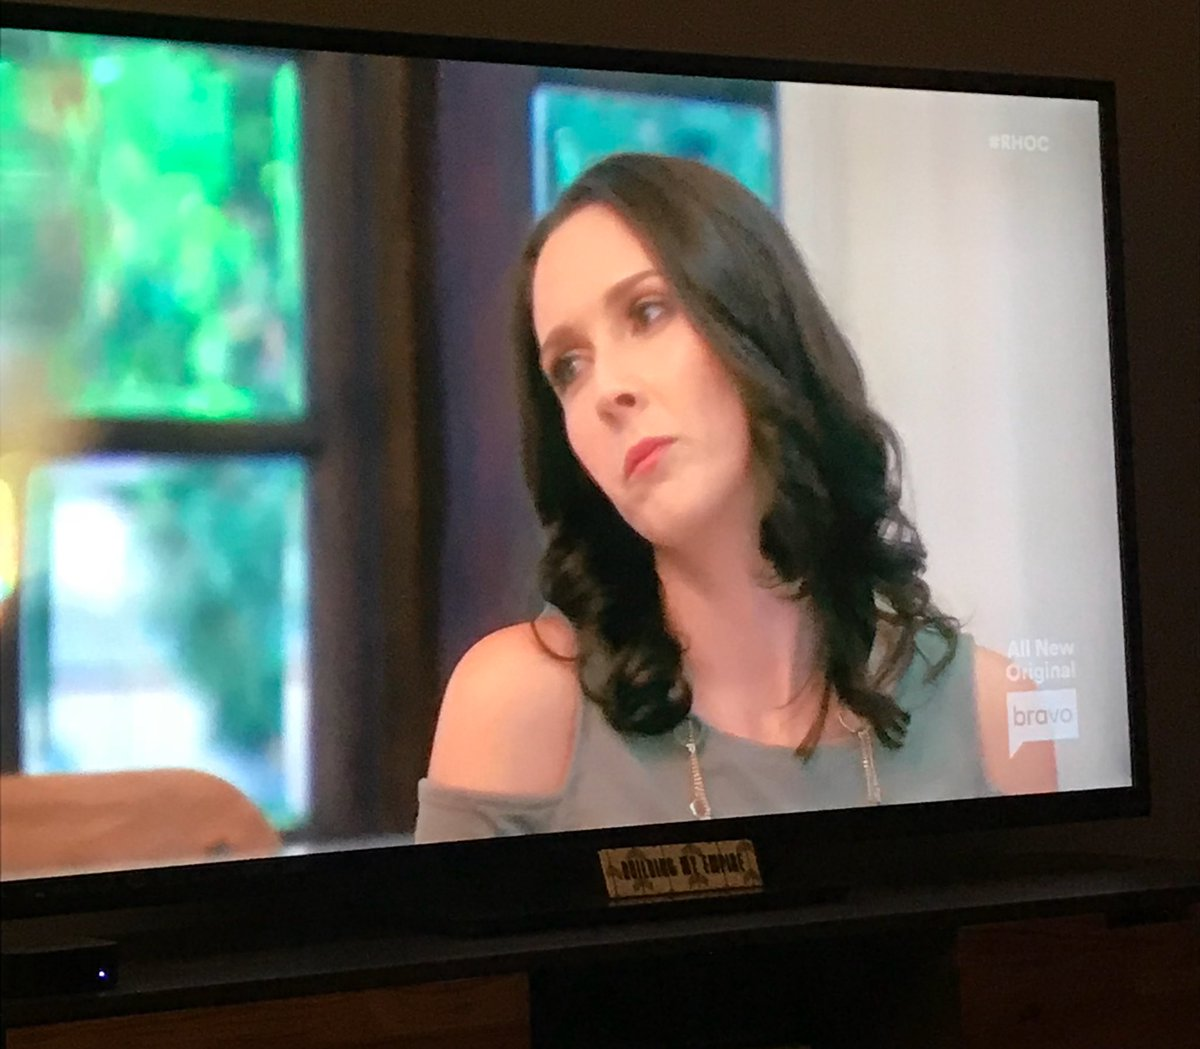 Omg this creature #MysticMcKayla #RHOC https://t.co/rrxRBfliB7